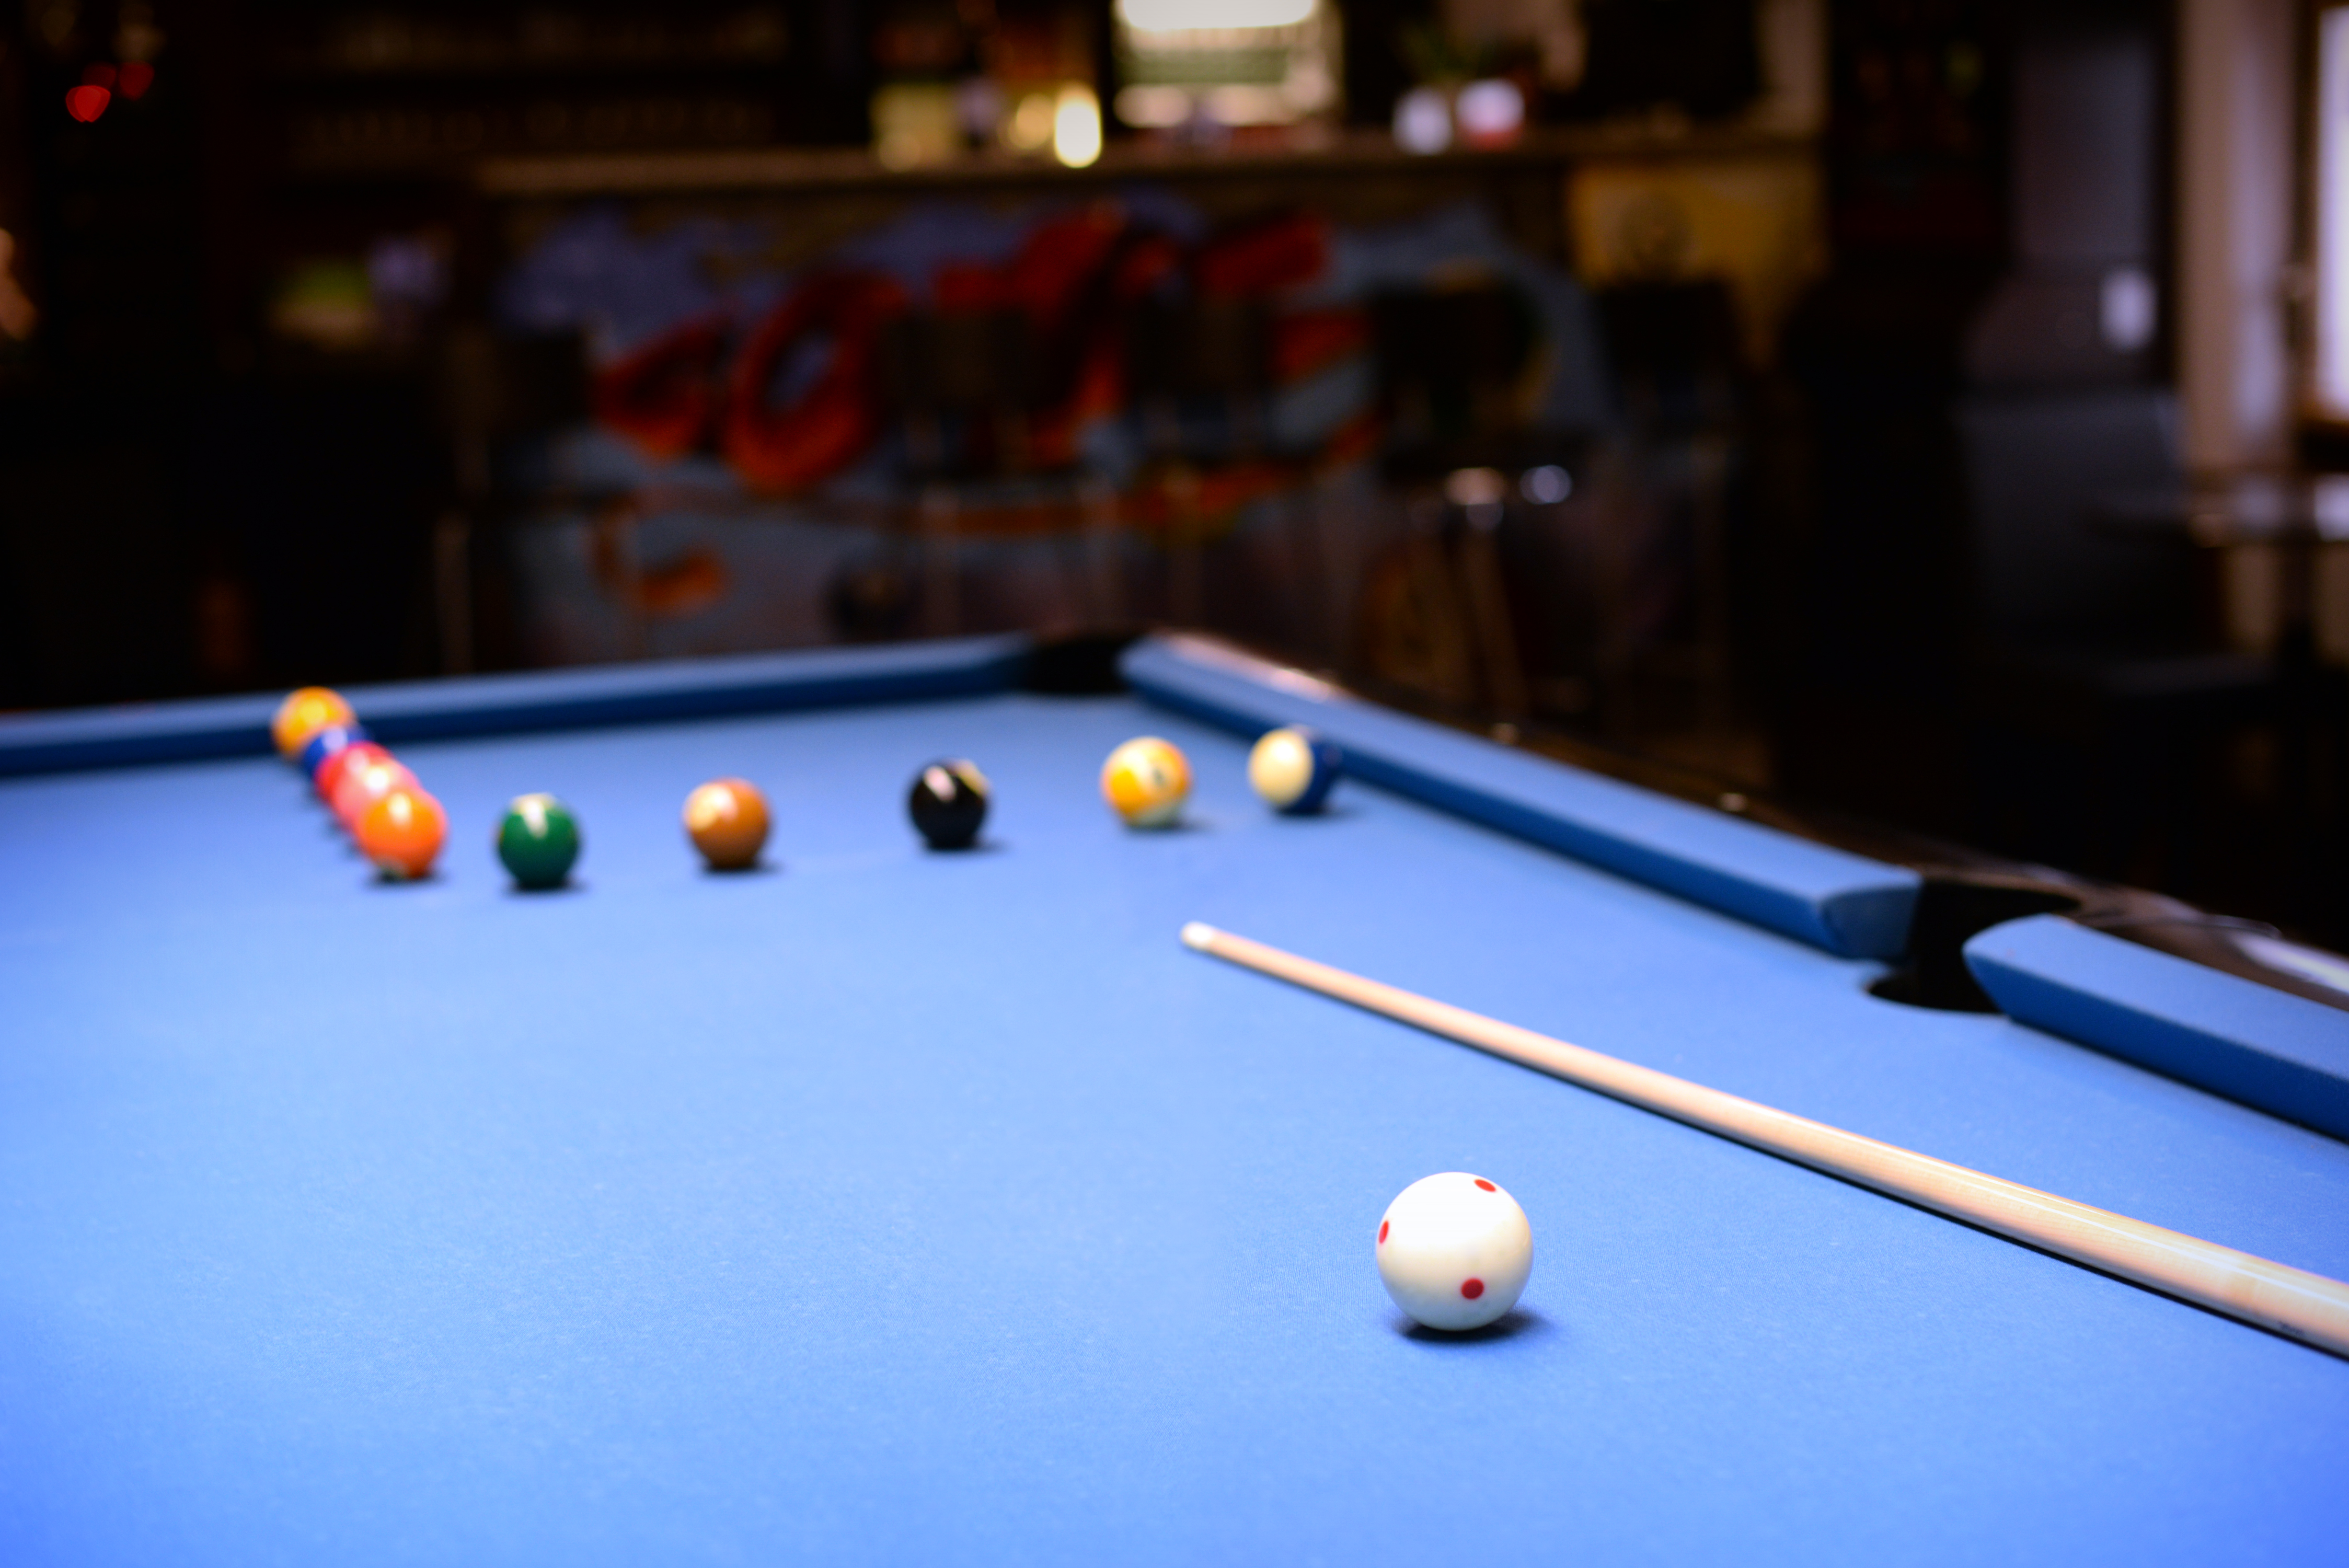 Licensed billiards coach by the EPBF.